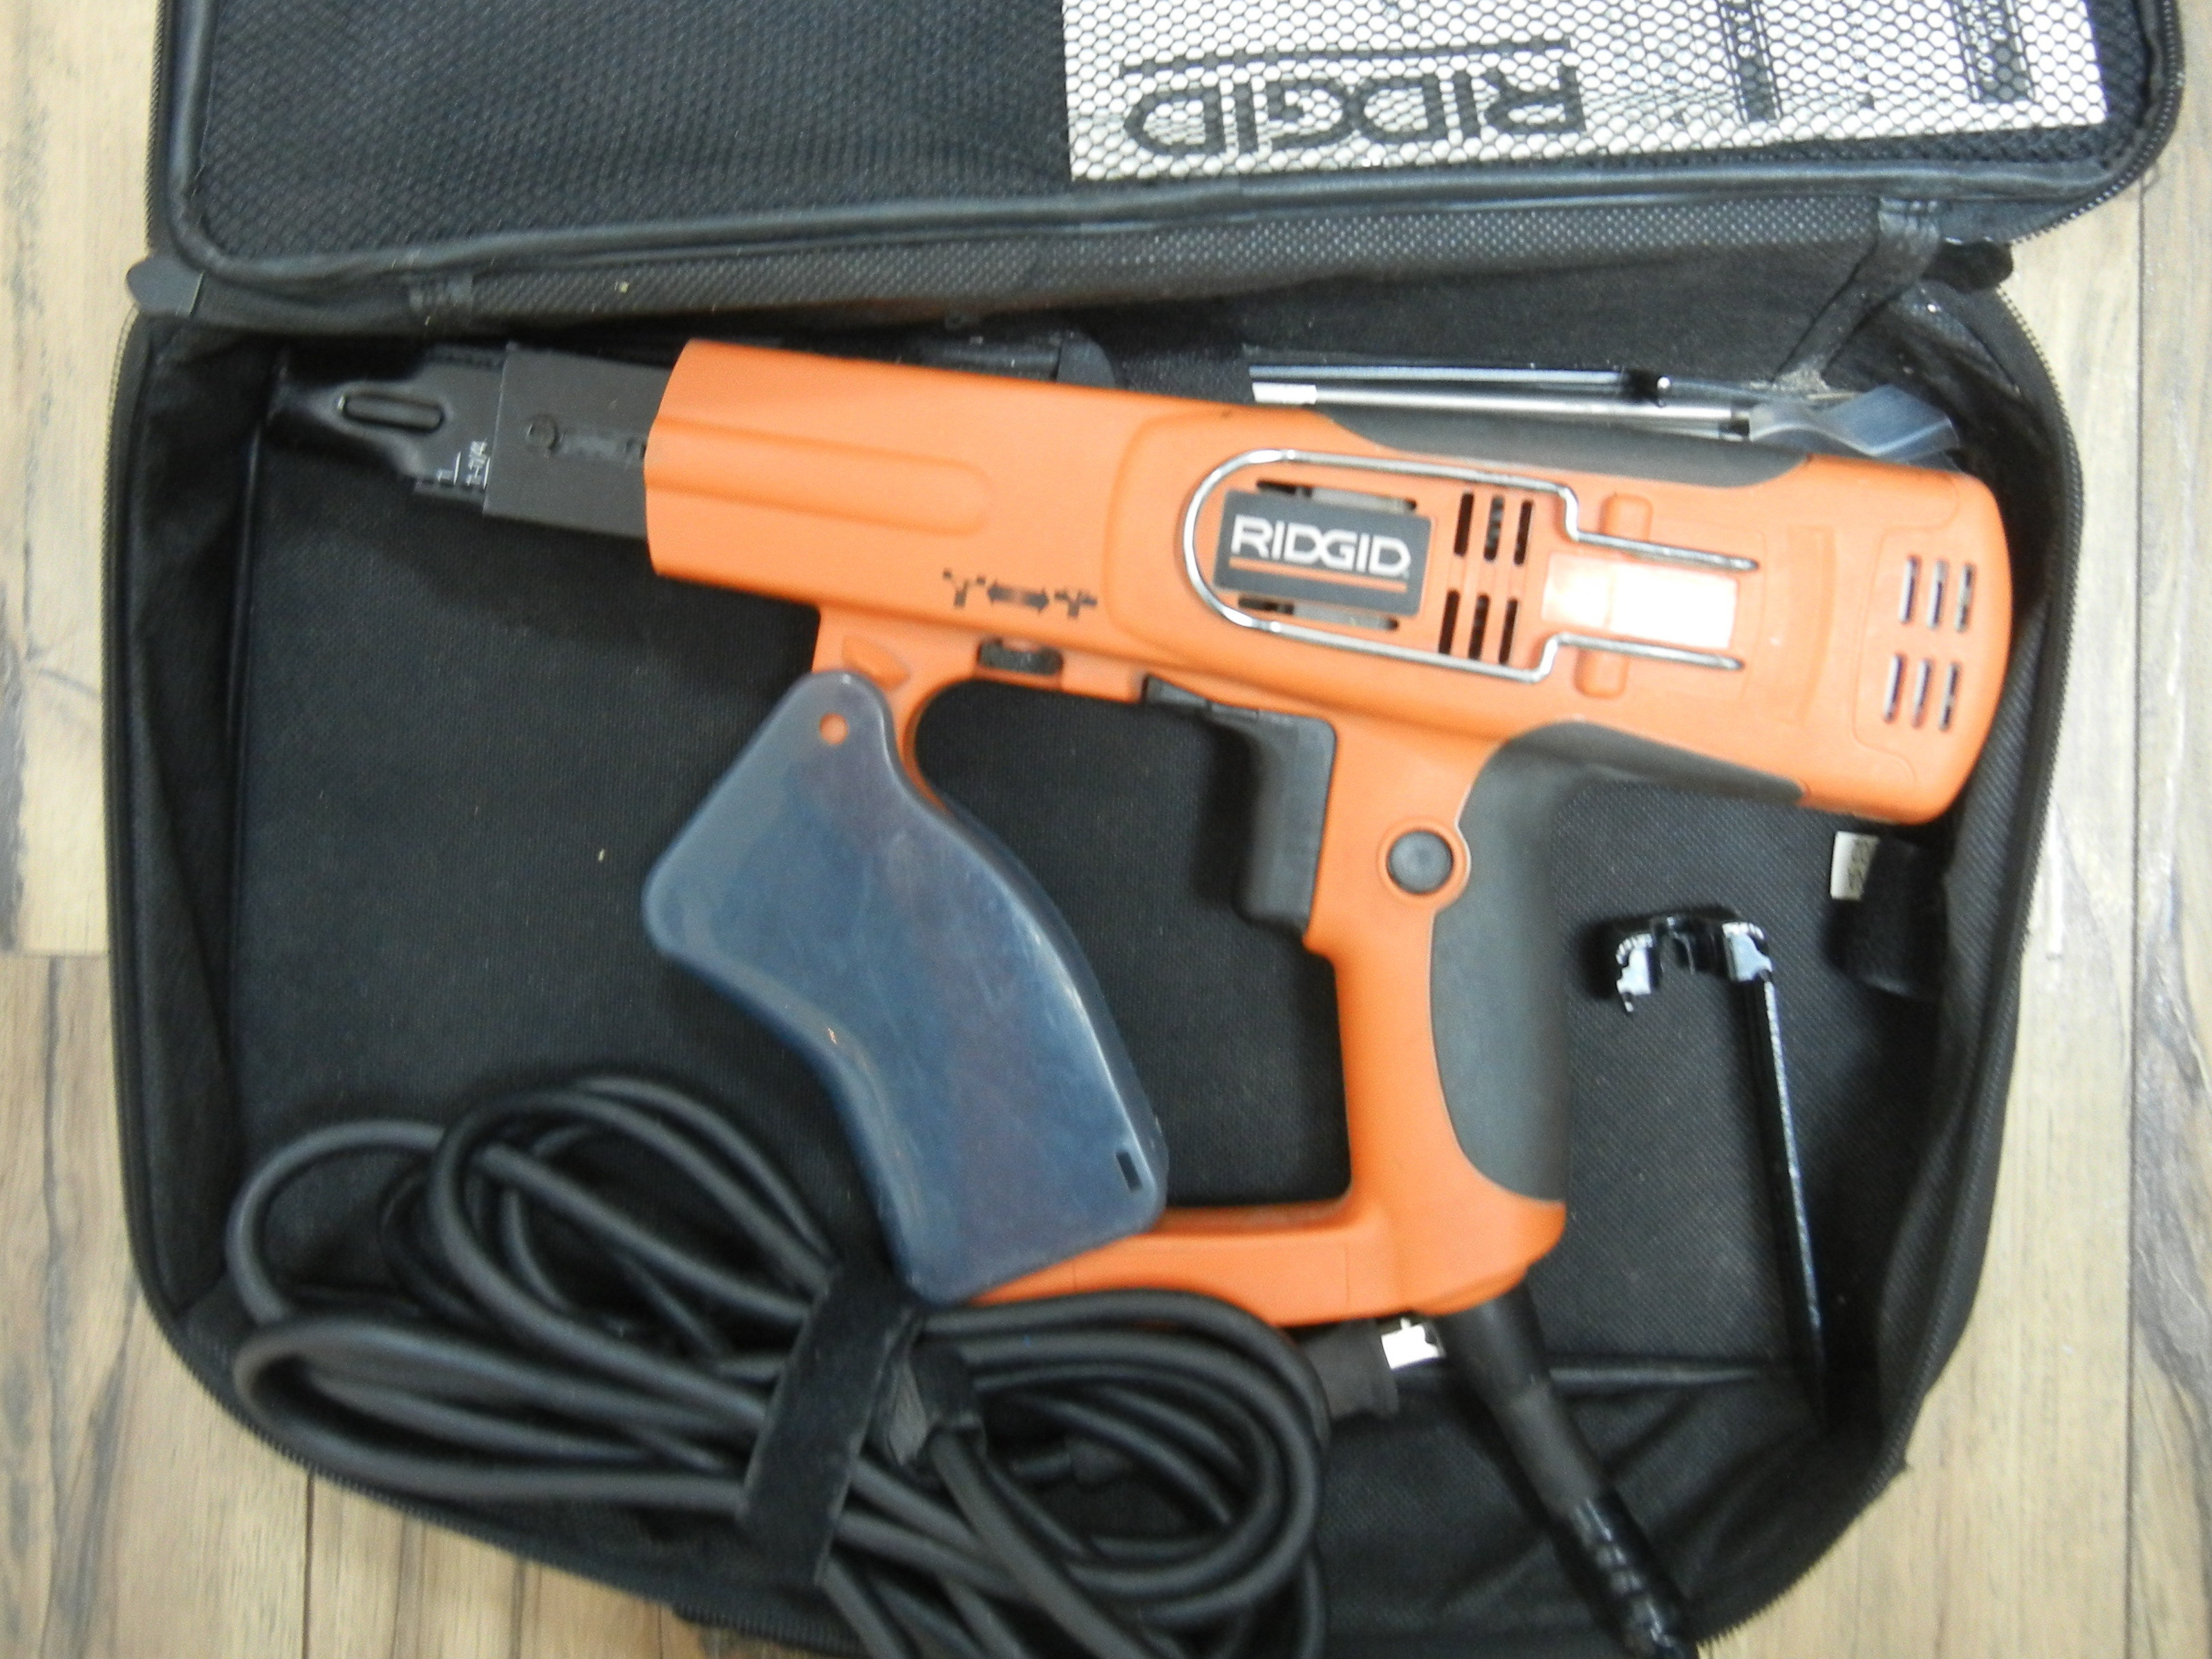 RIDGID TOOL - R6790 - COLLATED SCREWDRIVER